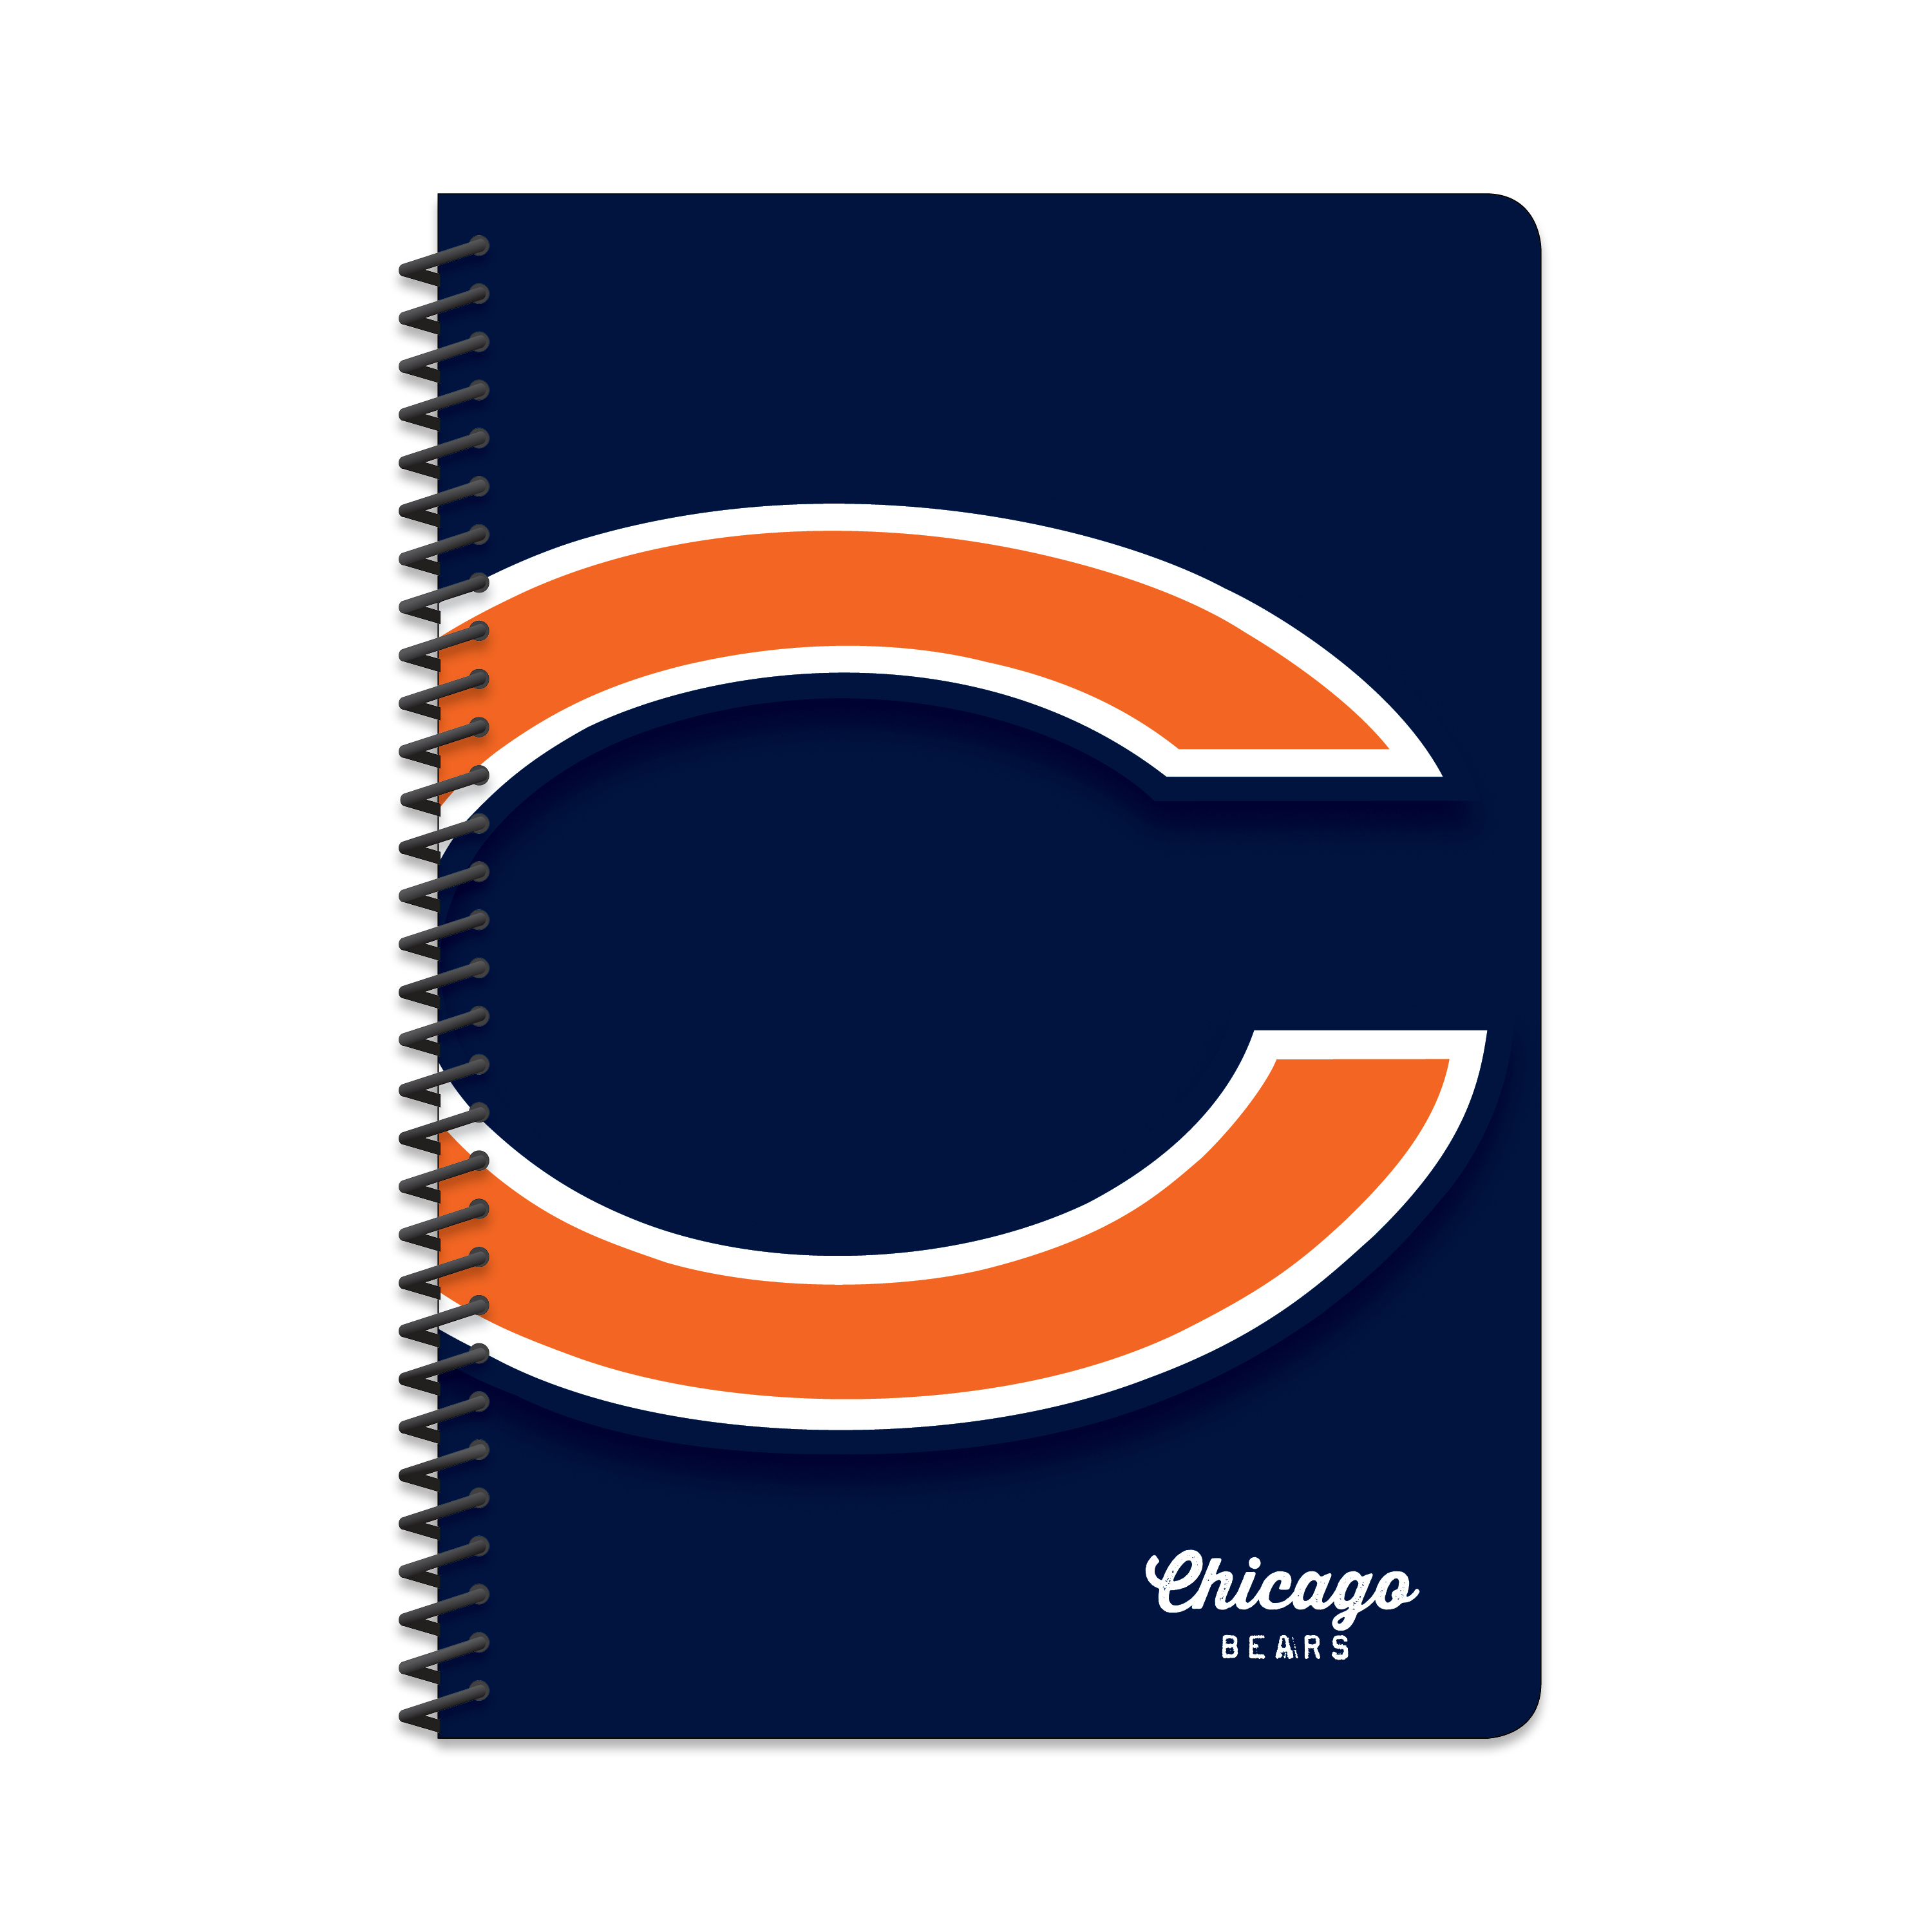 CHICAGO BEARS CLASSIC 5X7 NOTEBOOK